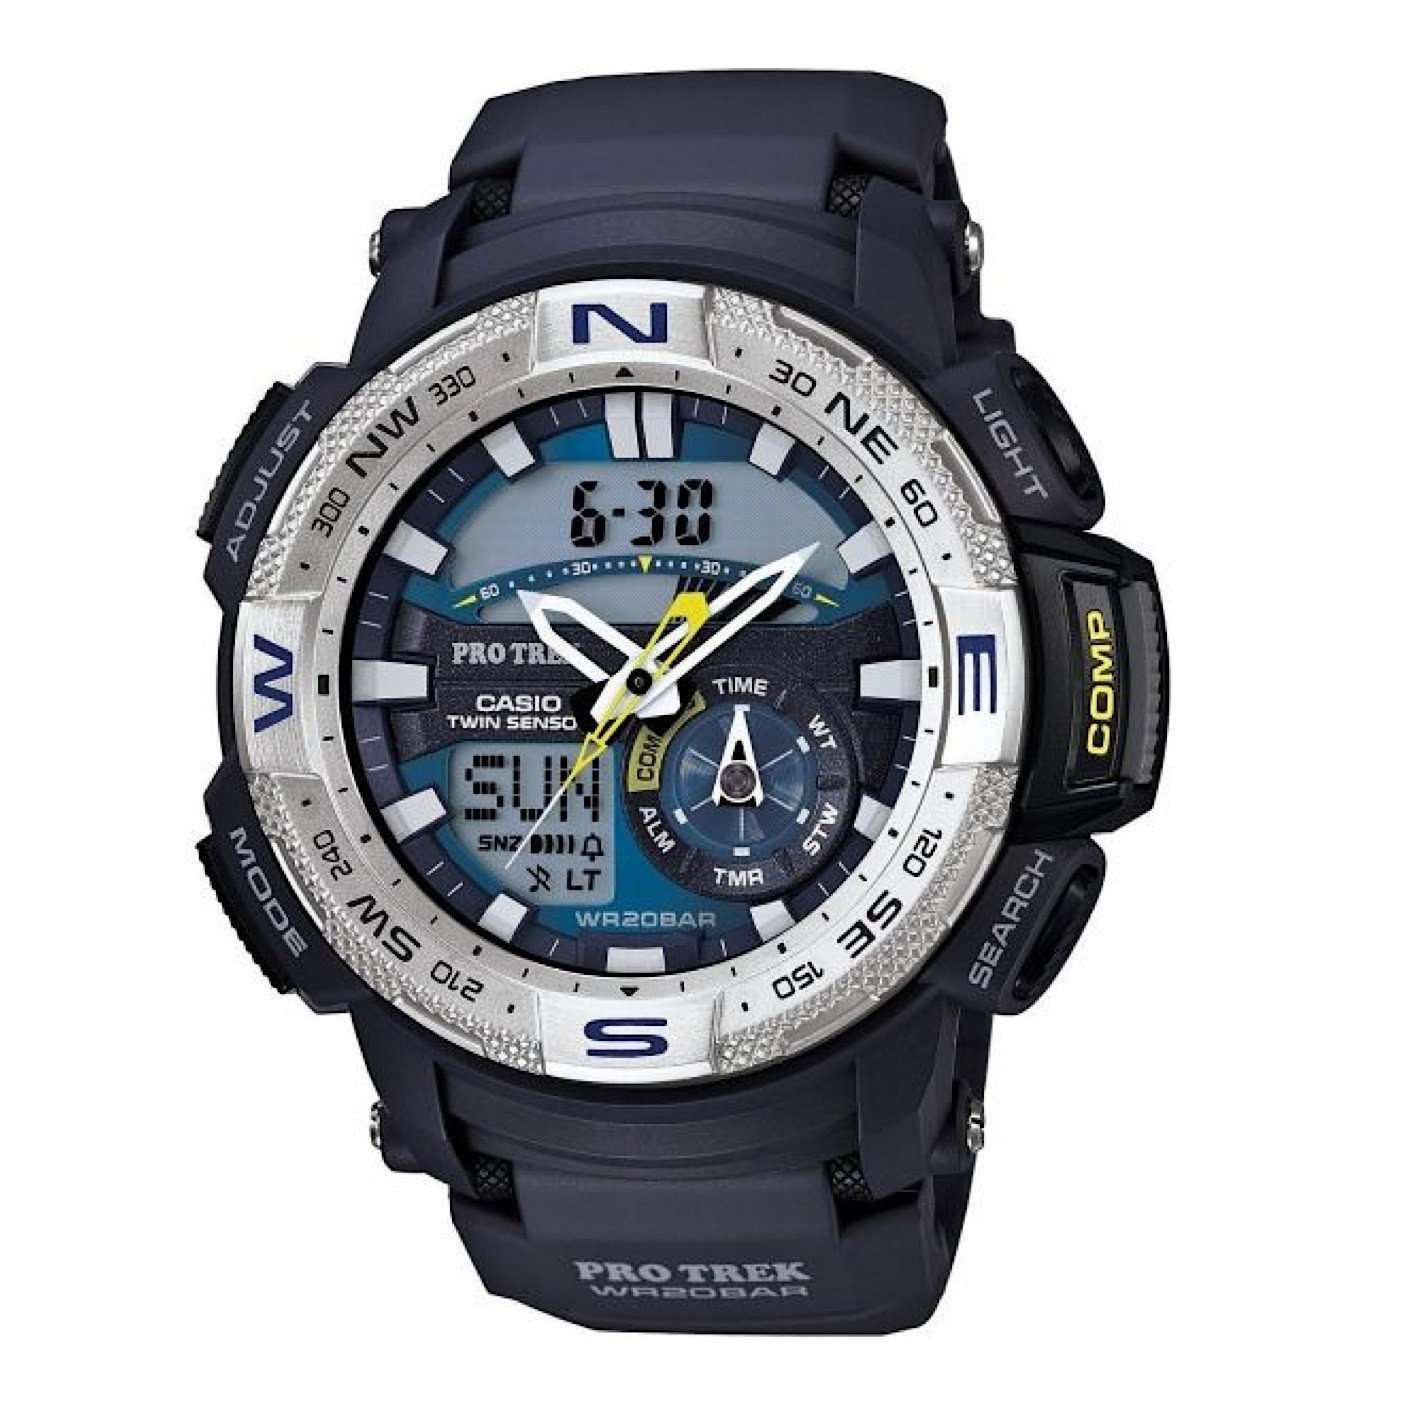 Casio Pro-Trek PRG280-2ER Chronograph Watch - TEXET